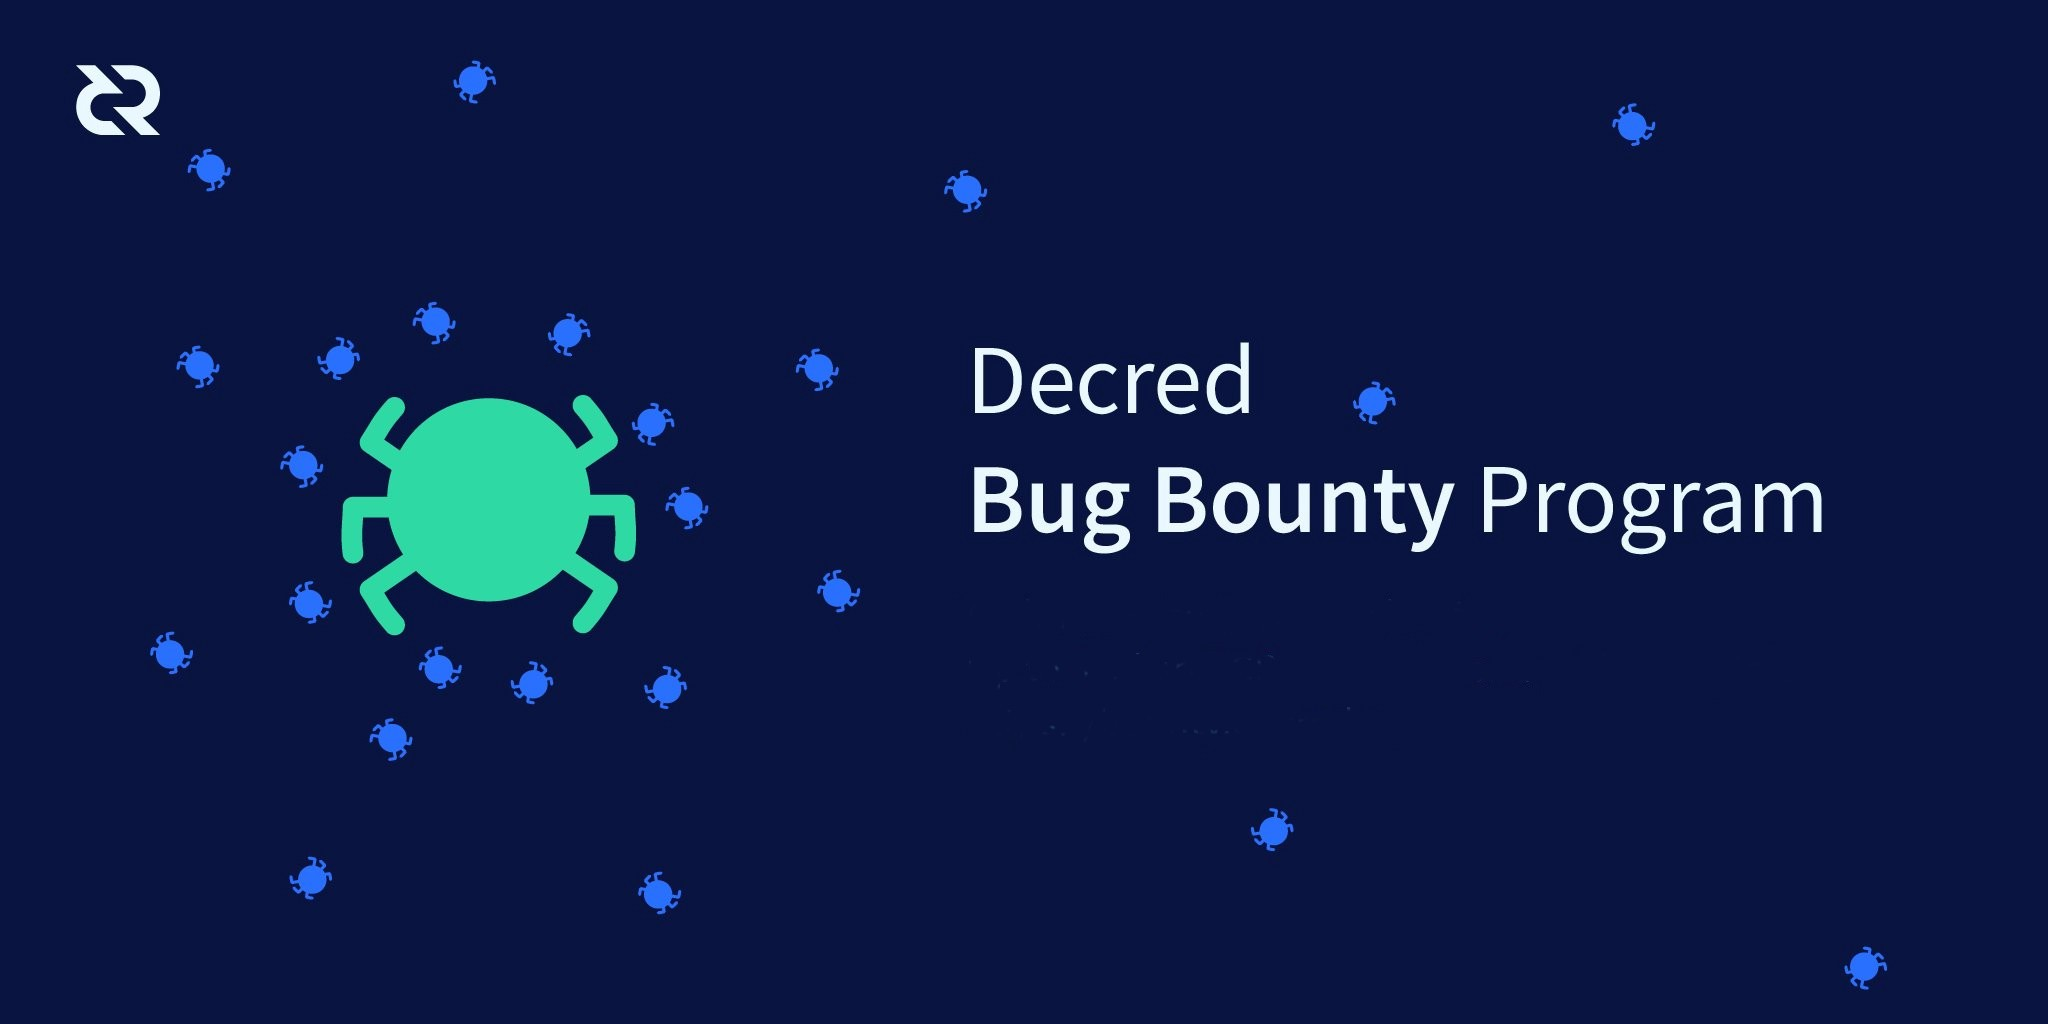 /decred-launches-debug-decred-bug-bounty-program-7e4d2af27ec9 feature image